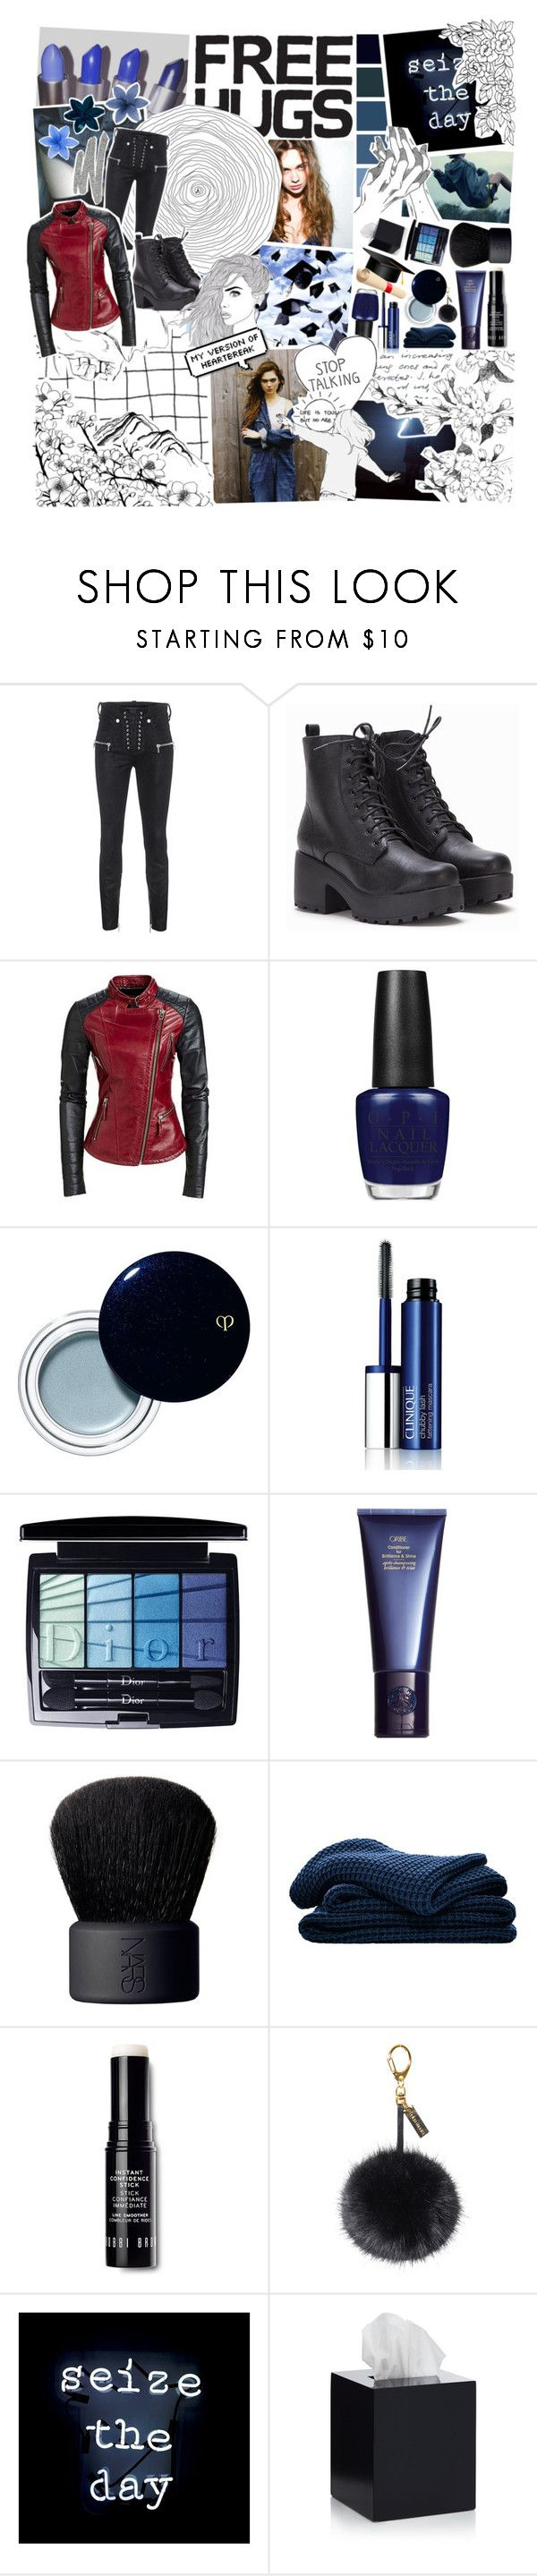 """""""""""Ooh woo, I'm a rebel just for kicks, now // I been feeling it since 1966, now // Might be over now, but I feel it still"""" // Round Ten // Marvel Academy Battle"""" by sorry-its-the-voices ❤ liked on Polyvore featuring Unravel, Libertine, OPI, Clé de Peau Beauté, Clinique, Christian Dior, Space NK, NARS Cosmetics, Sheridan and Bobbi Brown Cosmetics"""